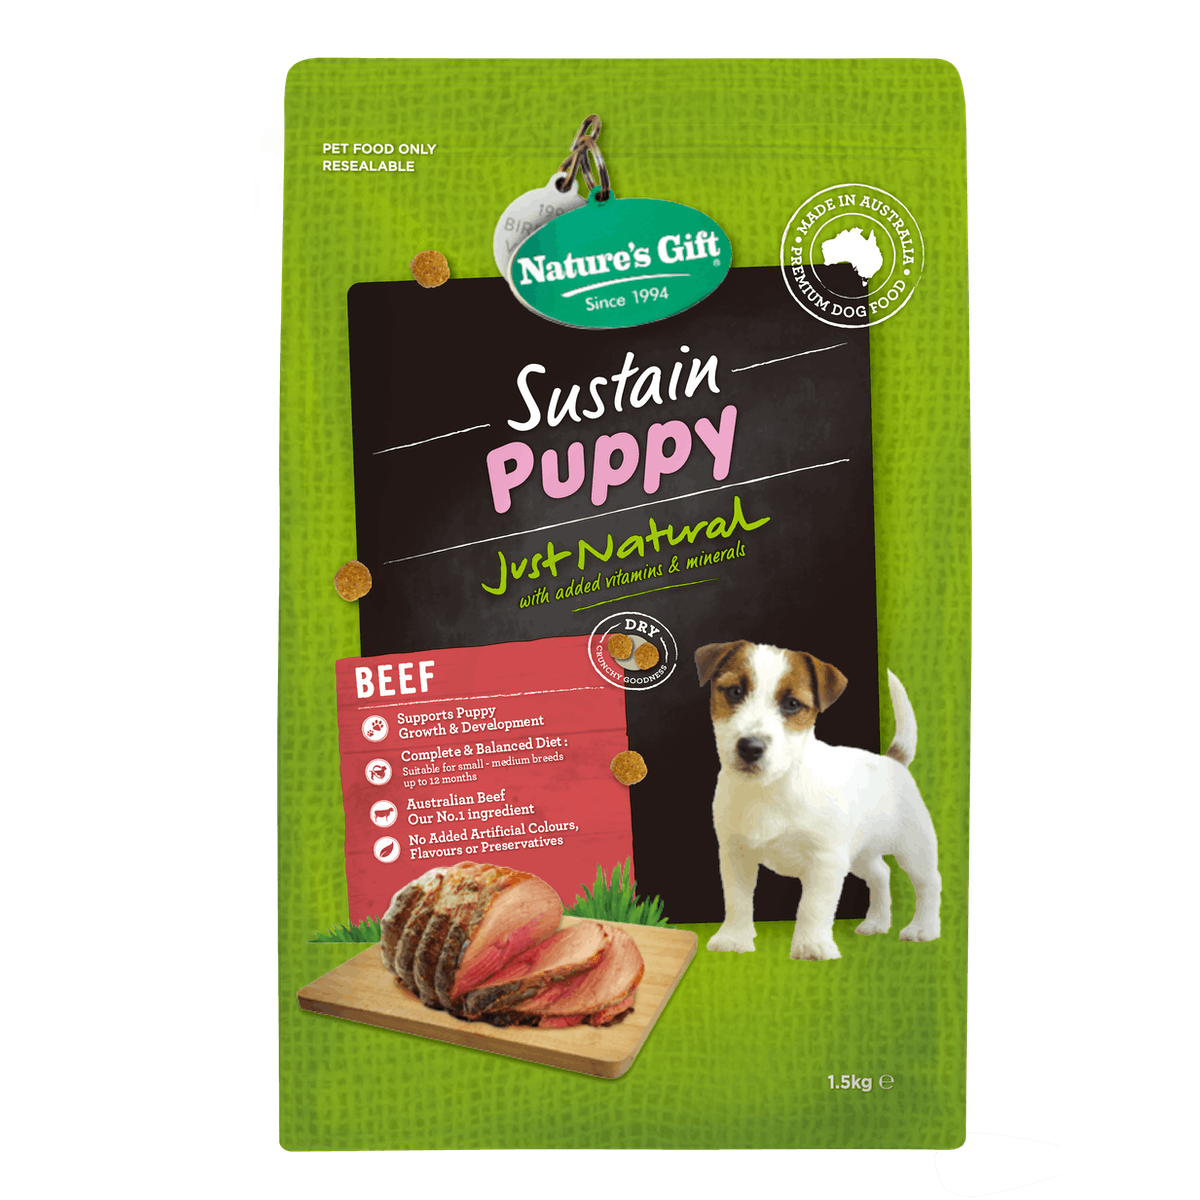 Nature's Gift | Beef | Dry dog food | Front of pack